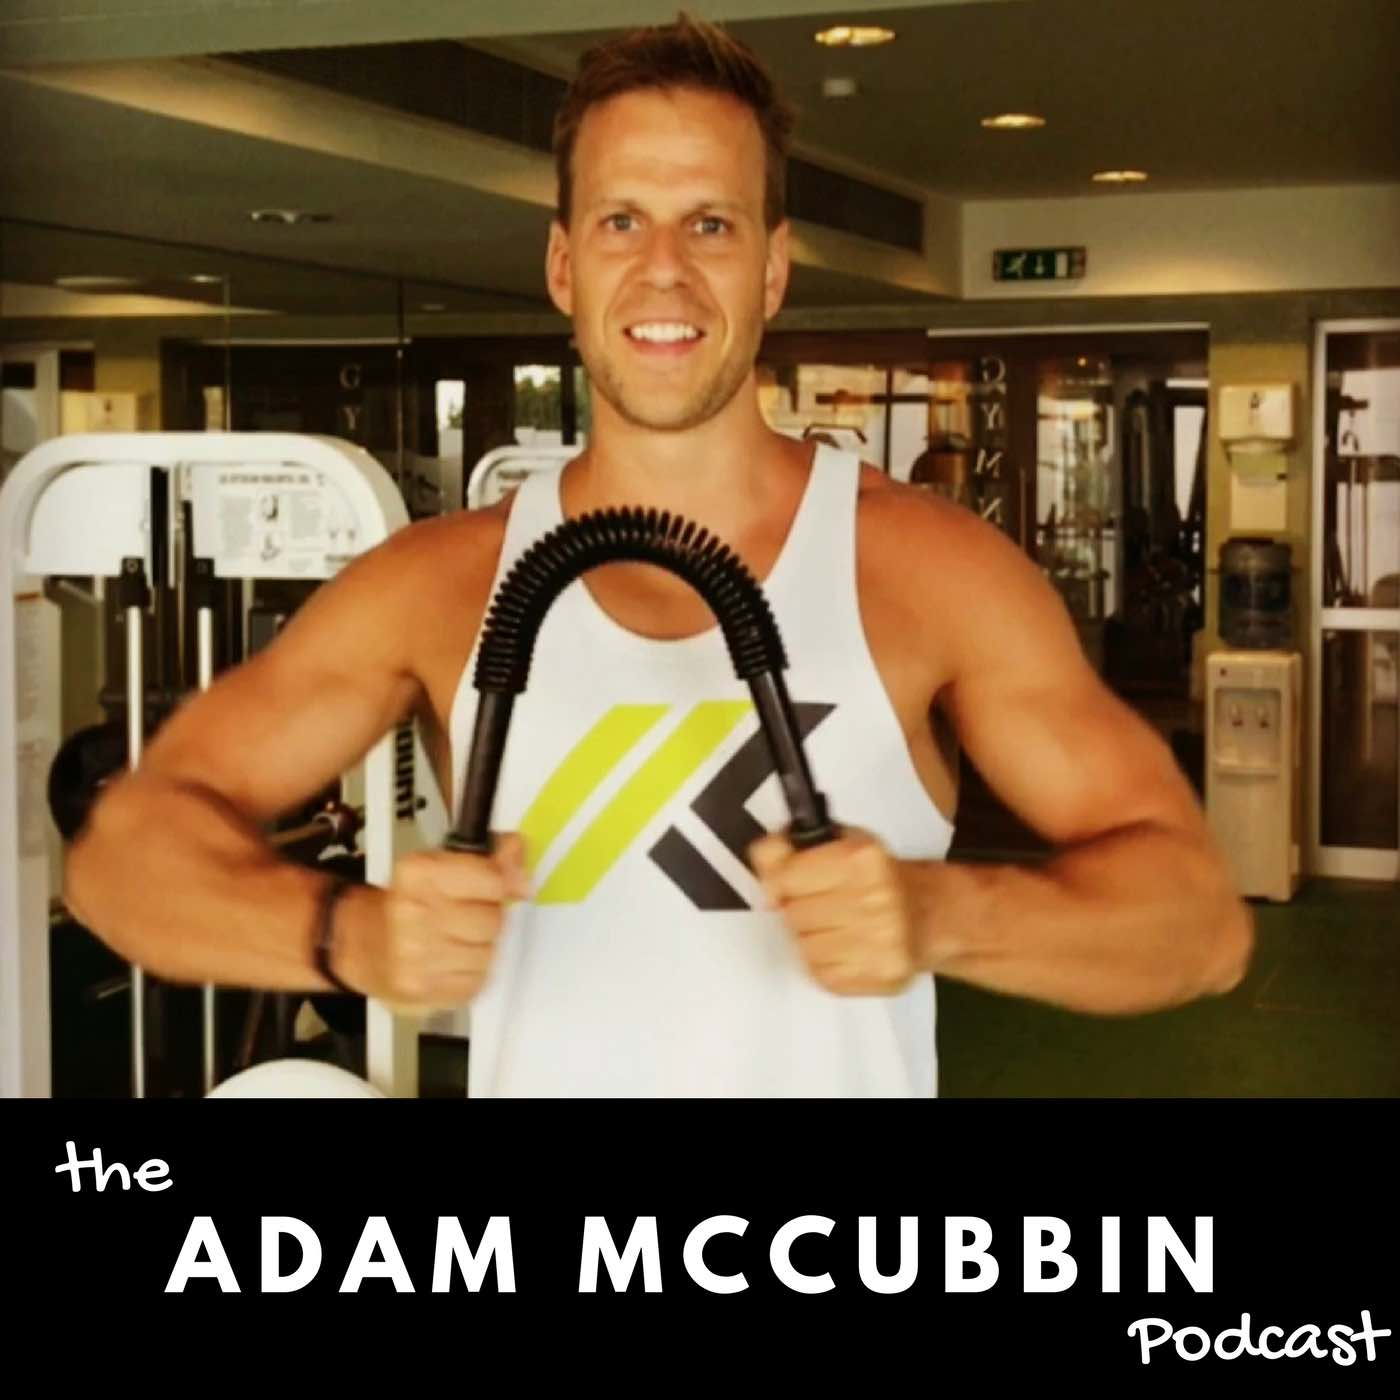 The Adam McCubbin Podcast